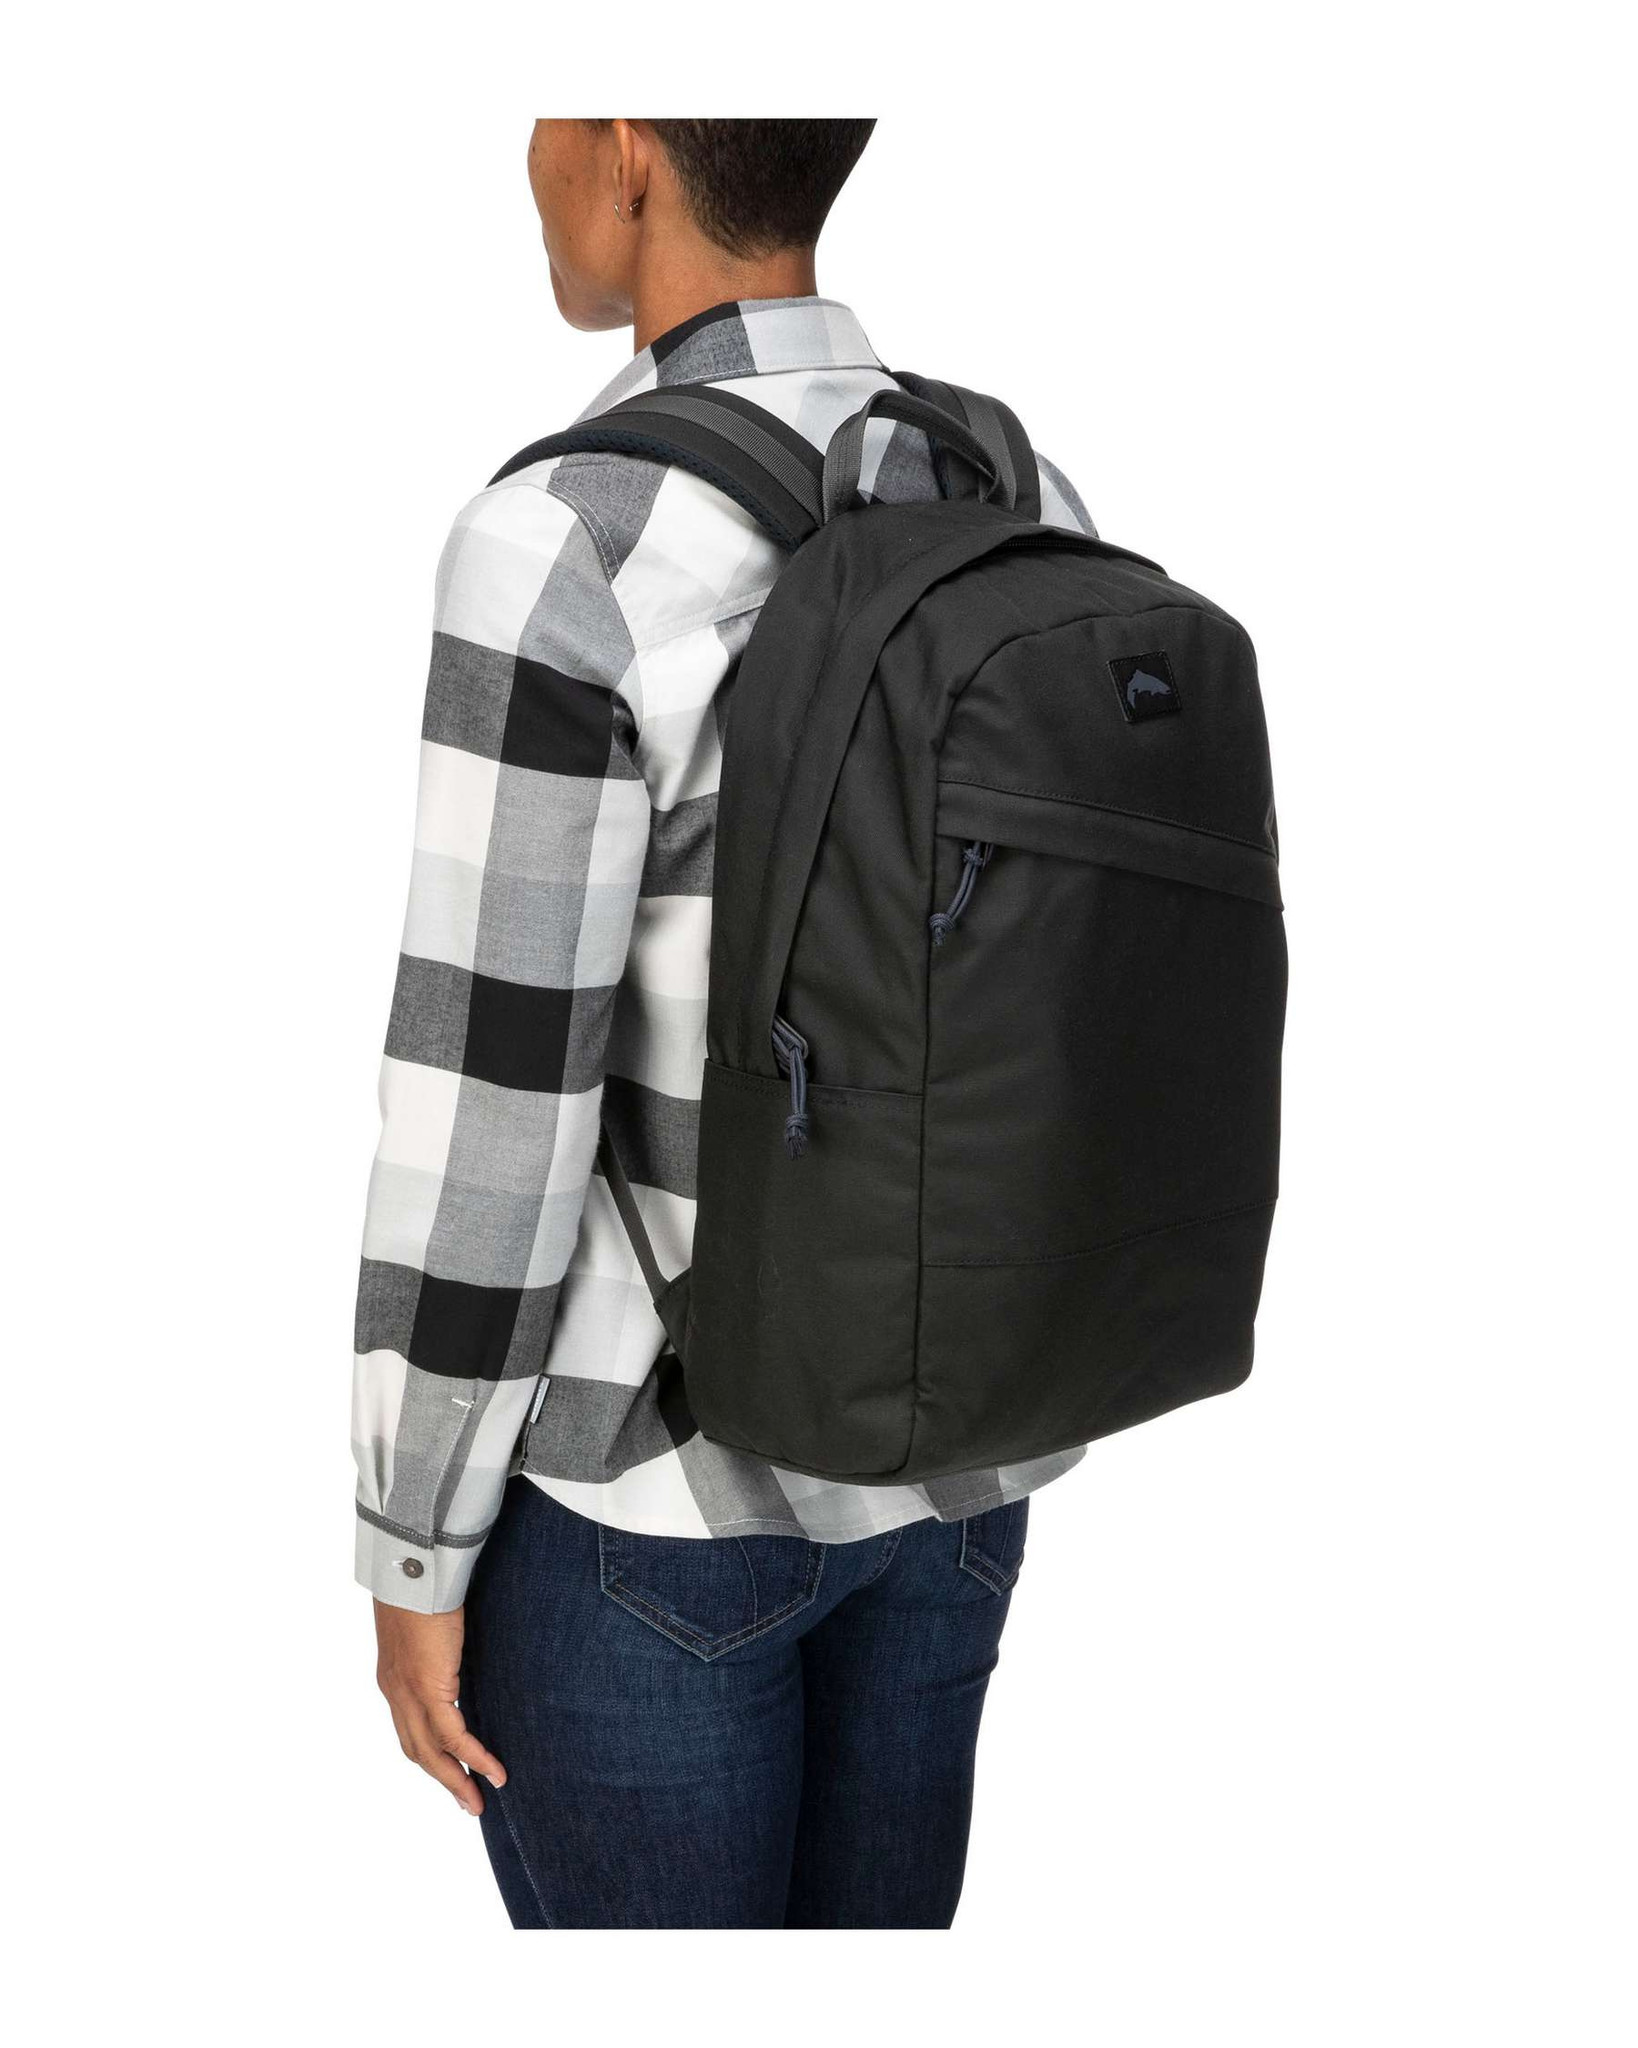 Simms Fishing Products SIMMS DOCKWEAR PACK- 28L